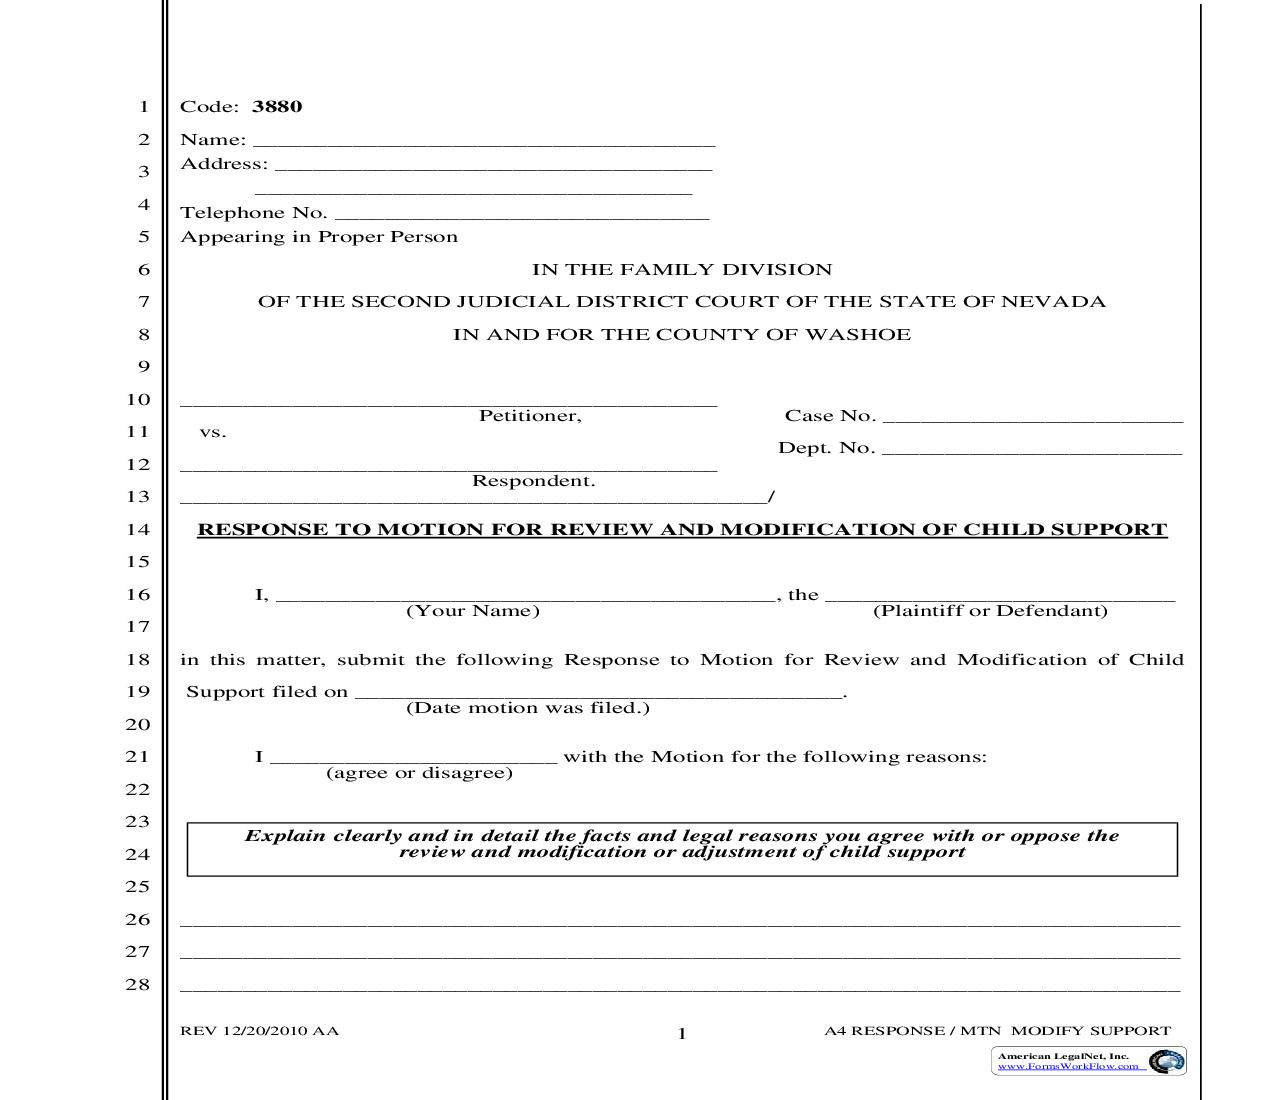 Response To Motion For Review And Modification Of Child Support {3880} | Pdf Fpdf Doc Docx | Nevada